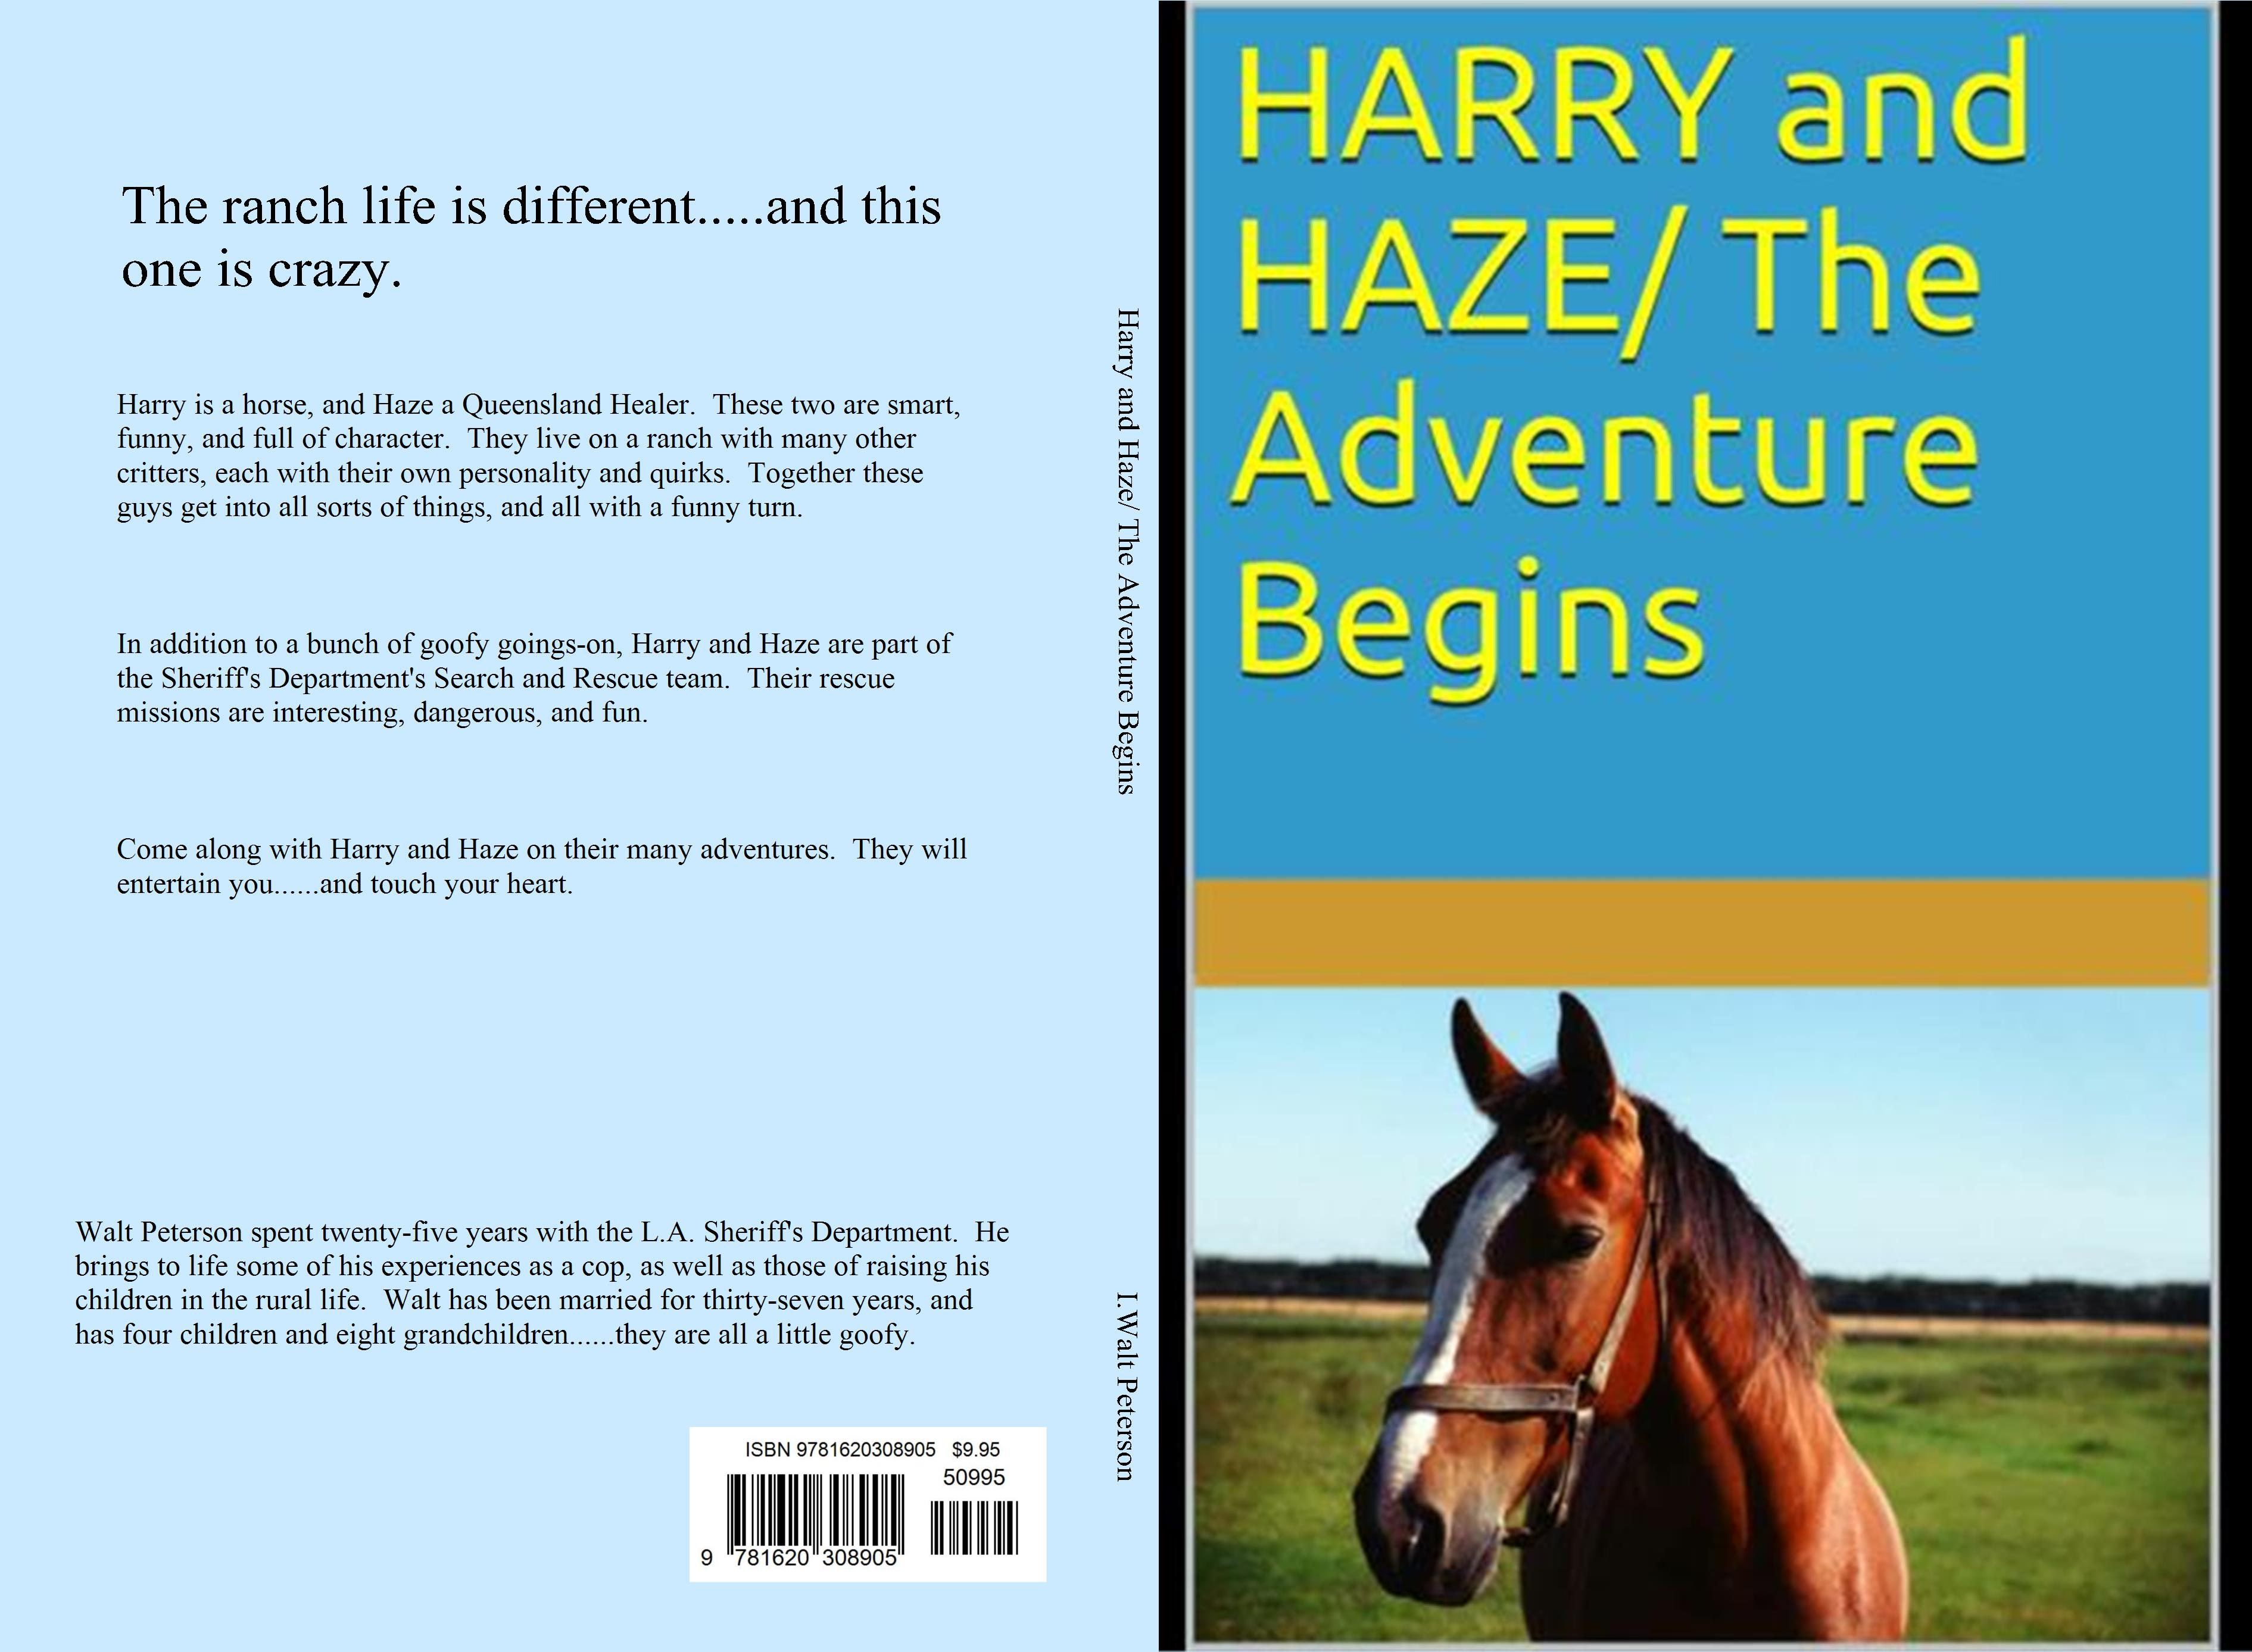 Harry and Haze/ The Adventure Begins cover image